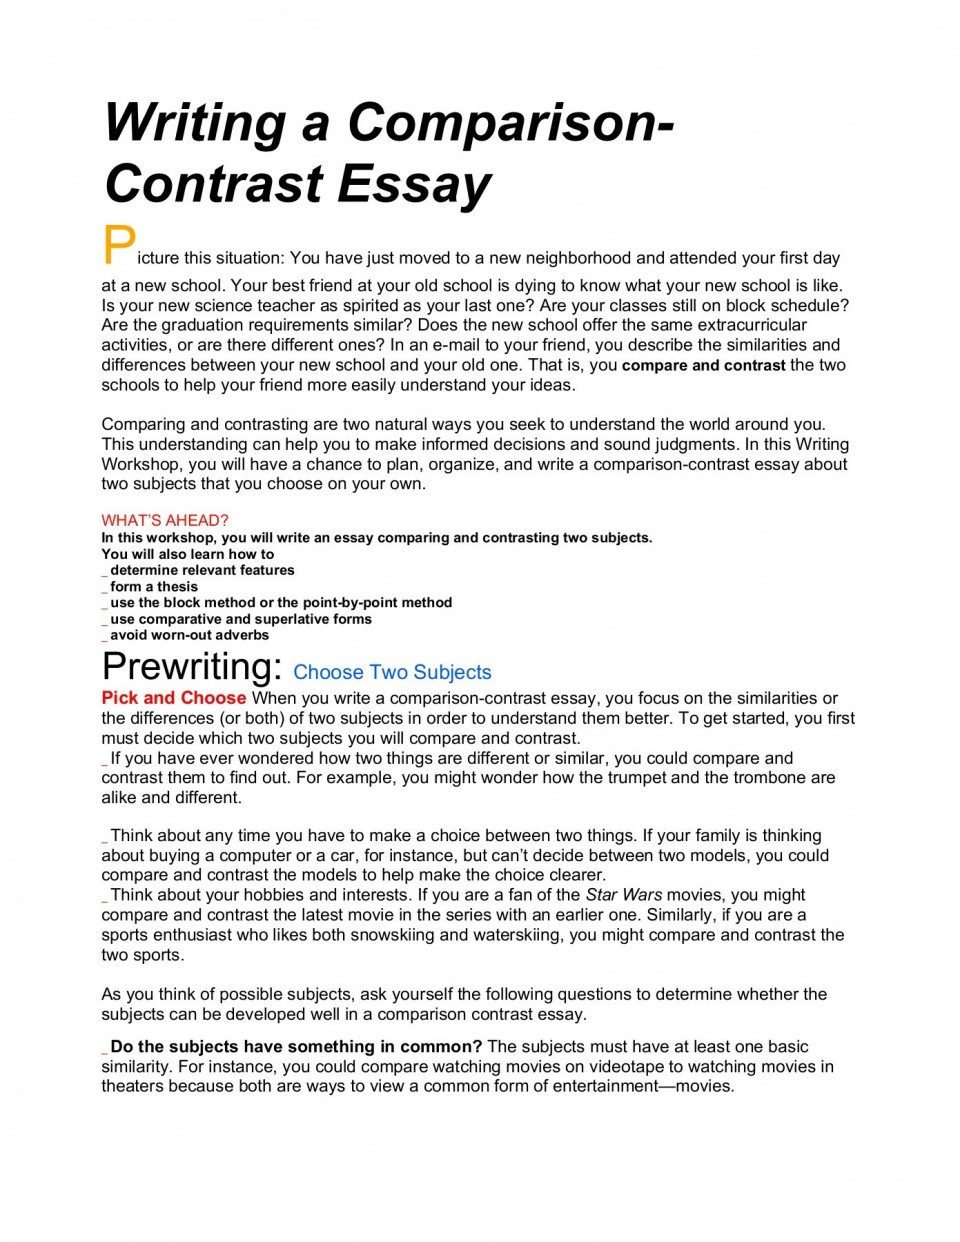 007 Compare Contrast Essay Fascinating Topics And Graphic Organizer Julius Caesar Answers High School 960